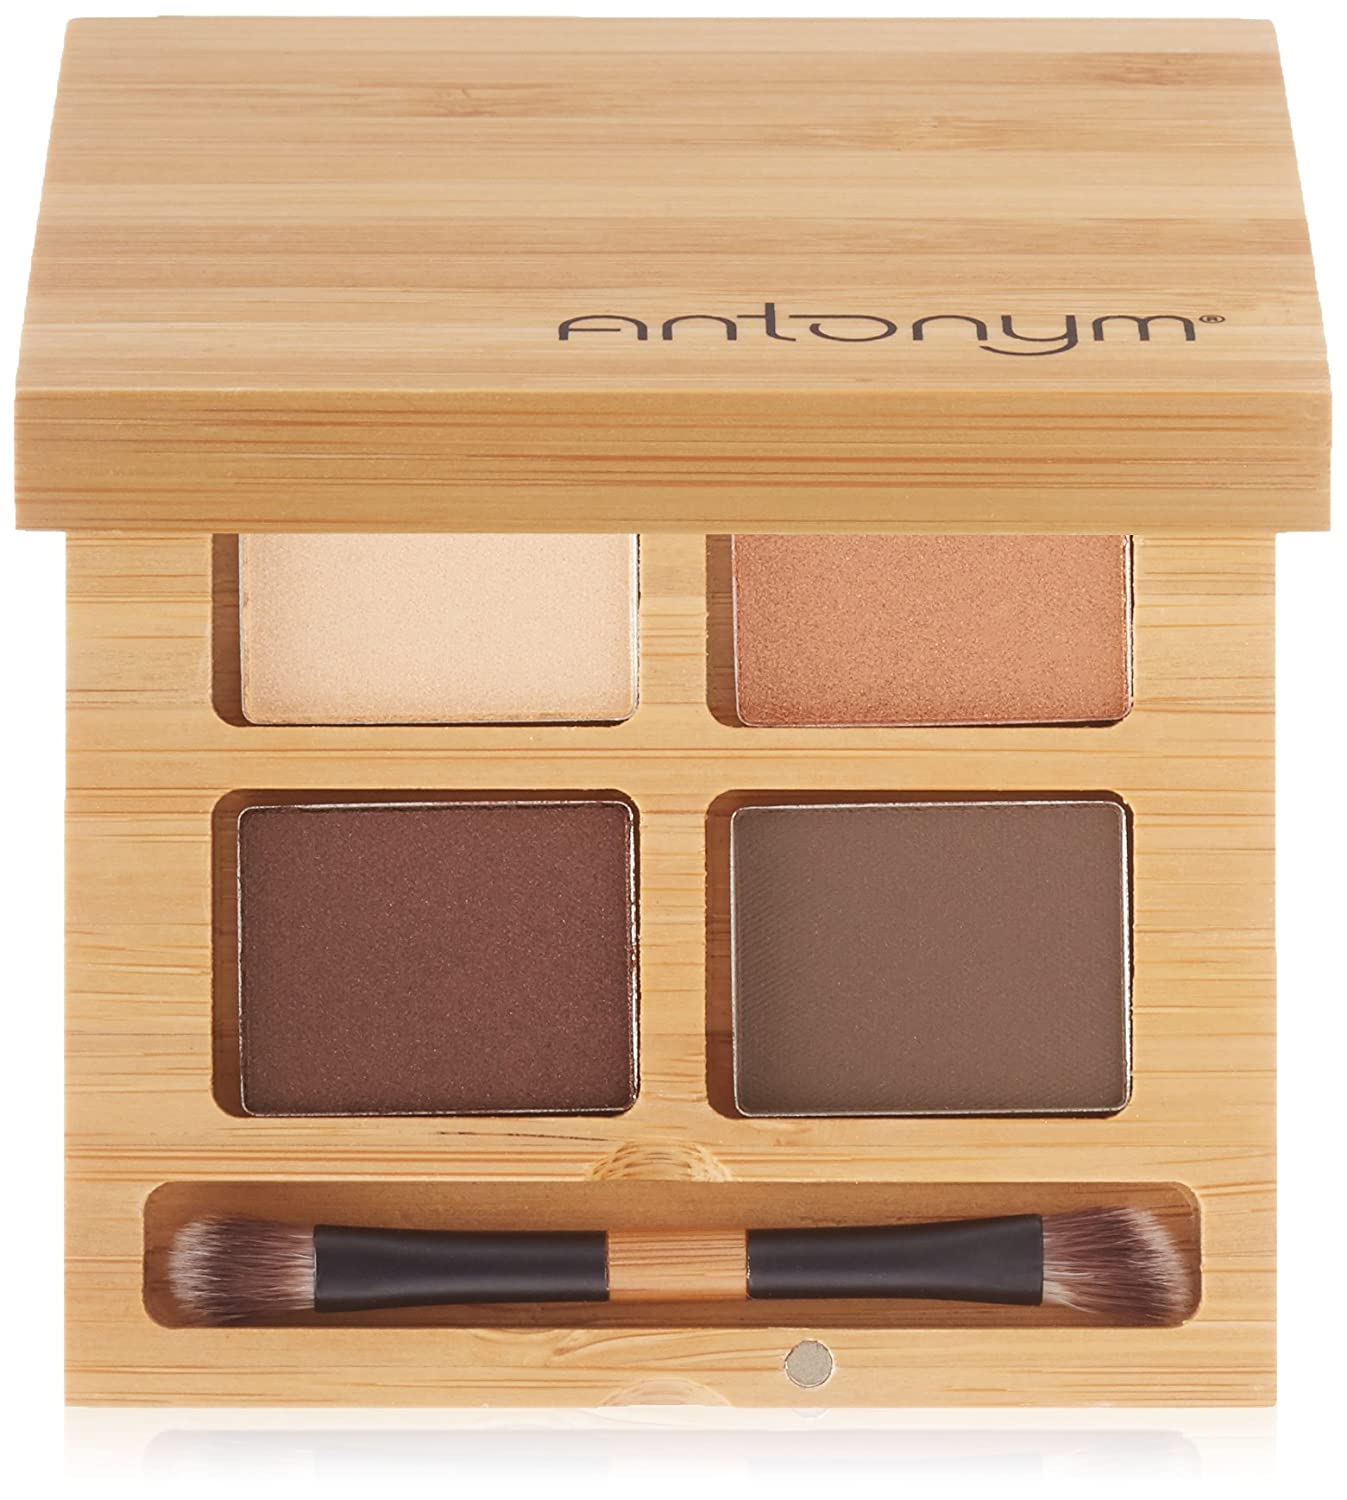 Antonym Cosmetics Ecocert Certified Eyeshadow Quattro, Noisette, Brown by Antonym Cosmetics VGS-008